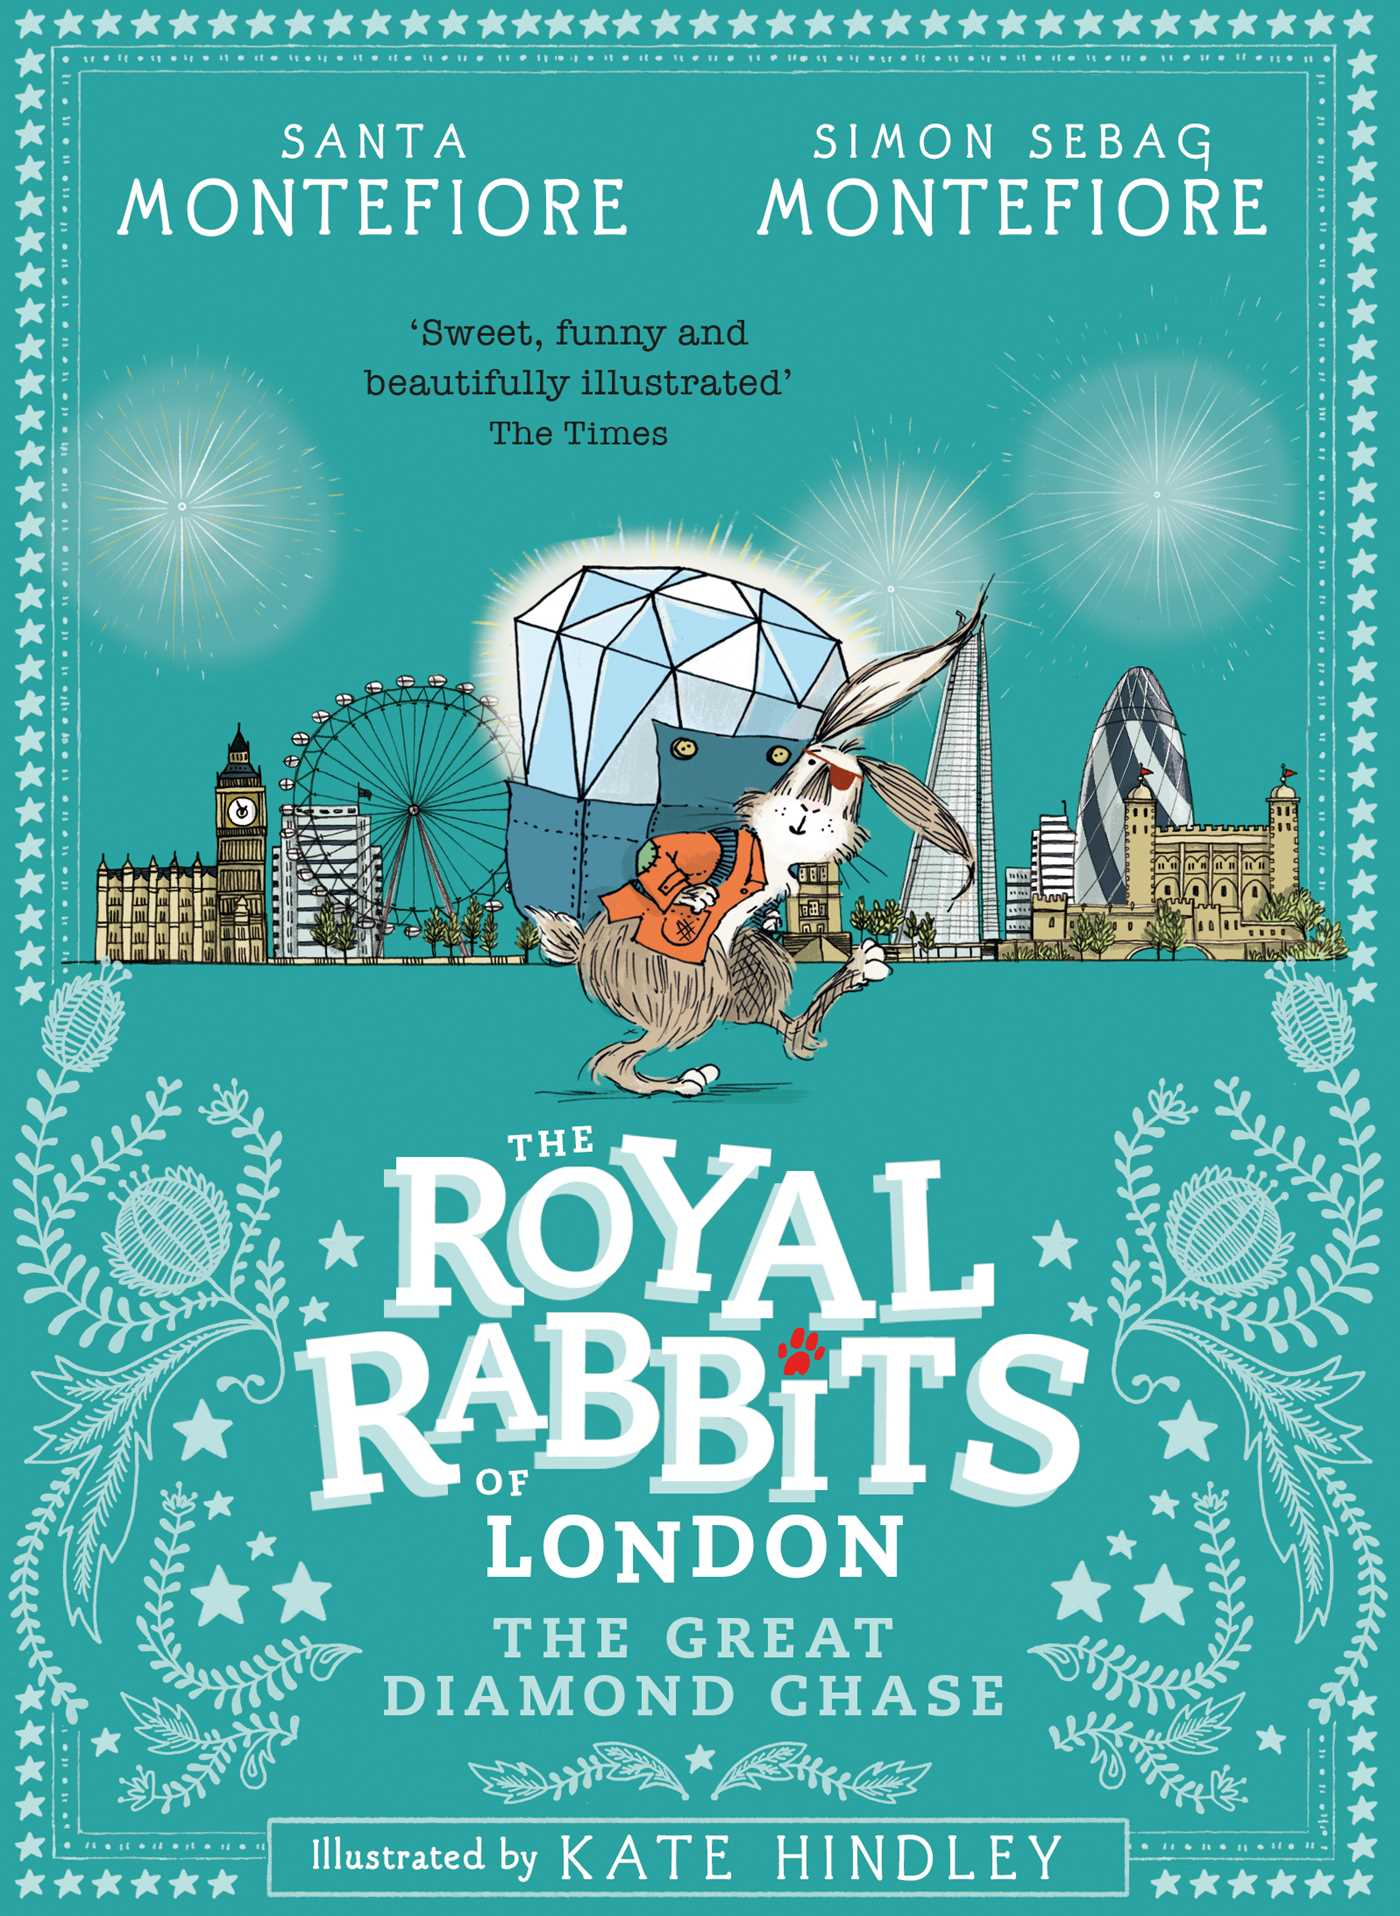 Royal rabbits of london the great diamond chase 9781471171482 hr